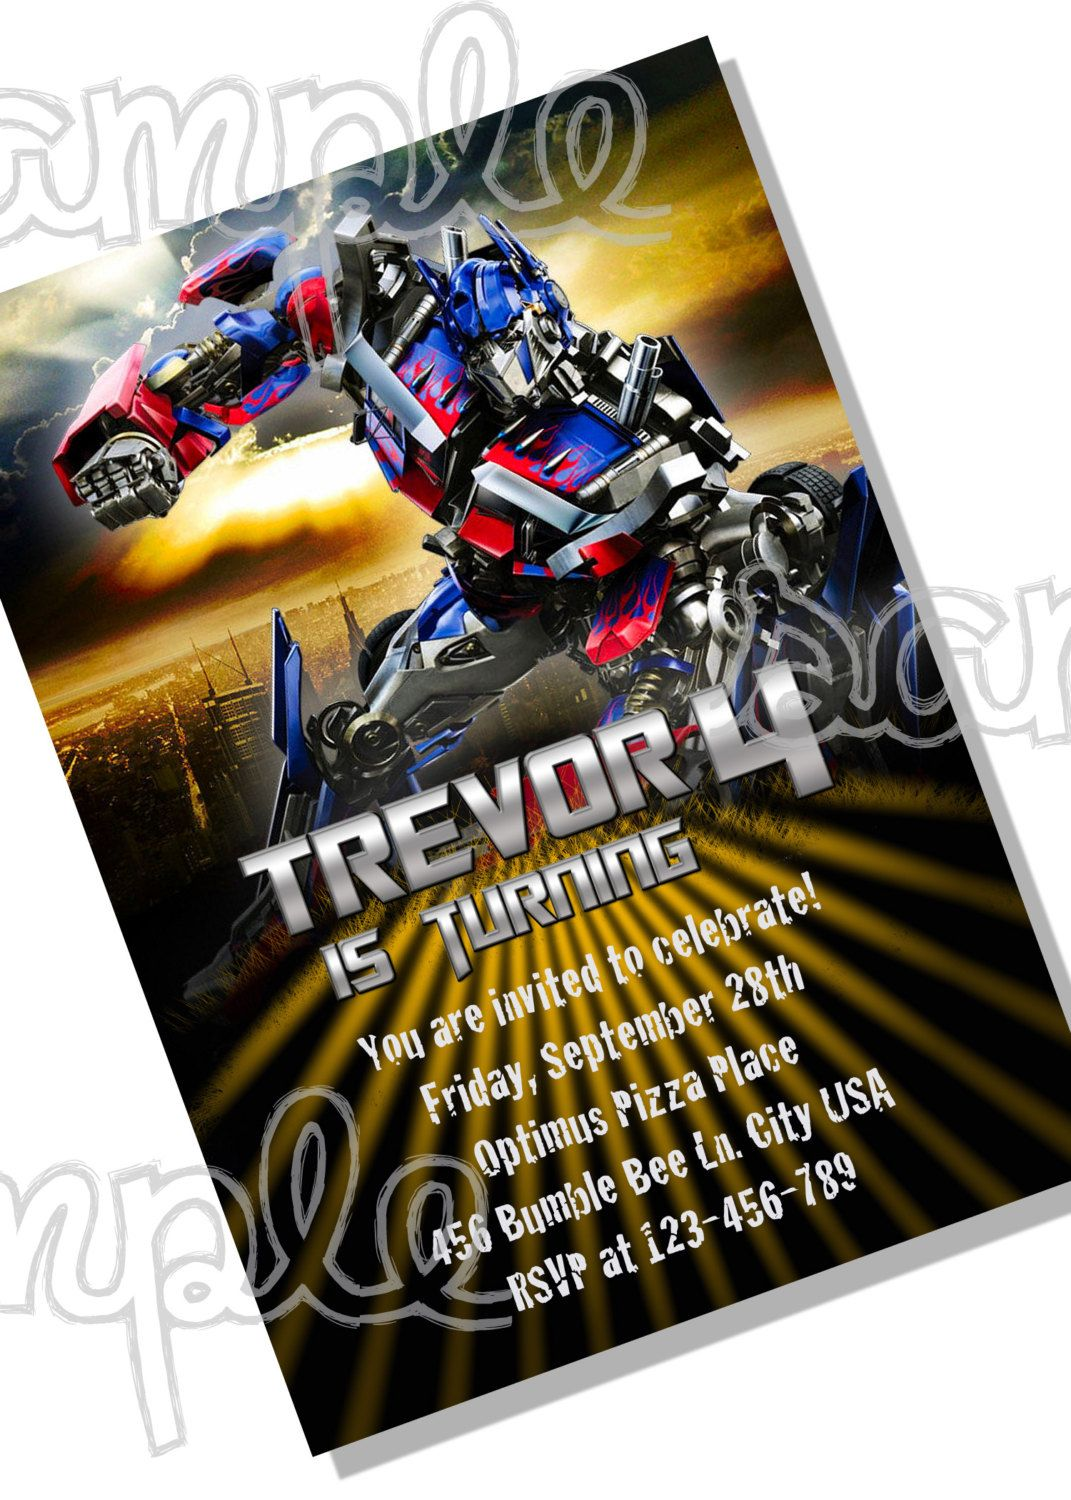 Transformers birthday party invitation jpg file by thepartymom transformers birthday party invitation jpg file by thepartymom 1000 filmwisefo